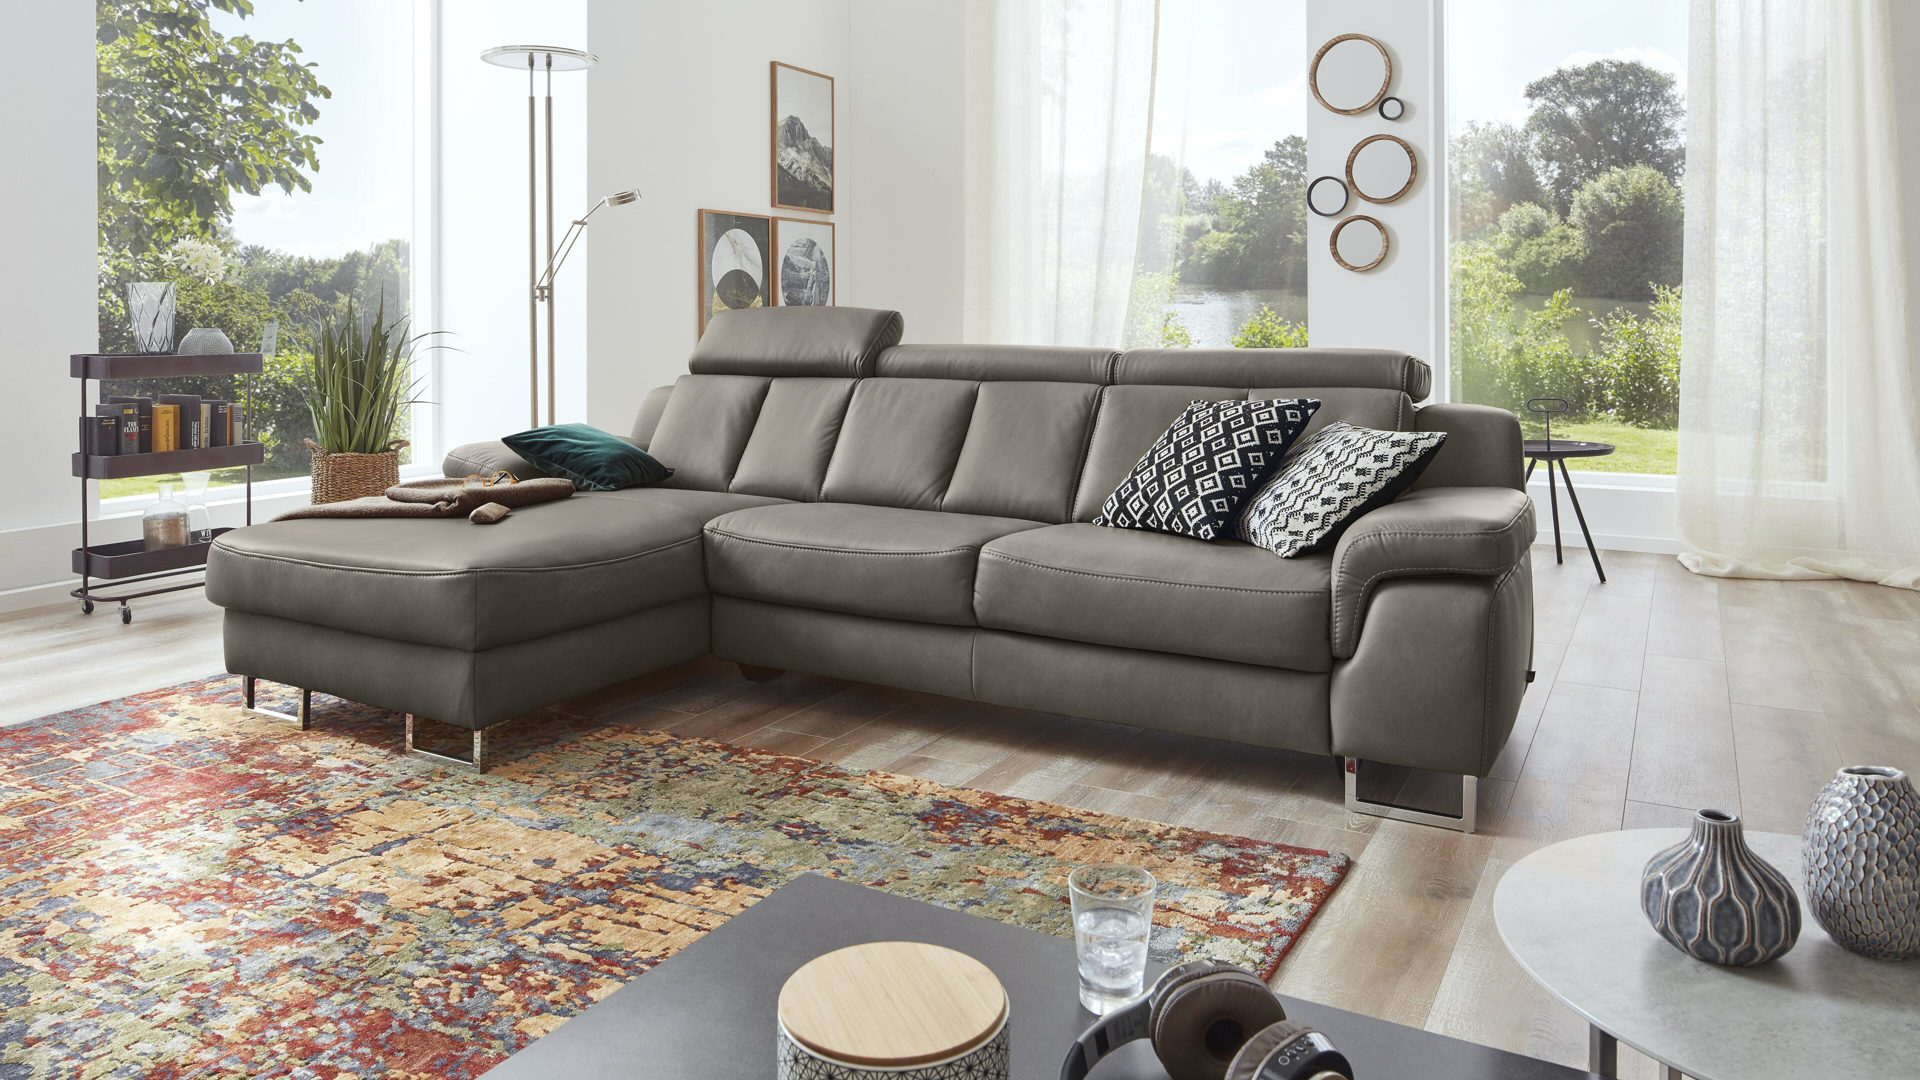 Sofa Füße Chrom Möbel Frauendorfer Amberg Highlight Interliving Interliving